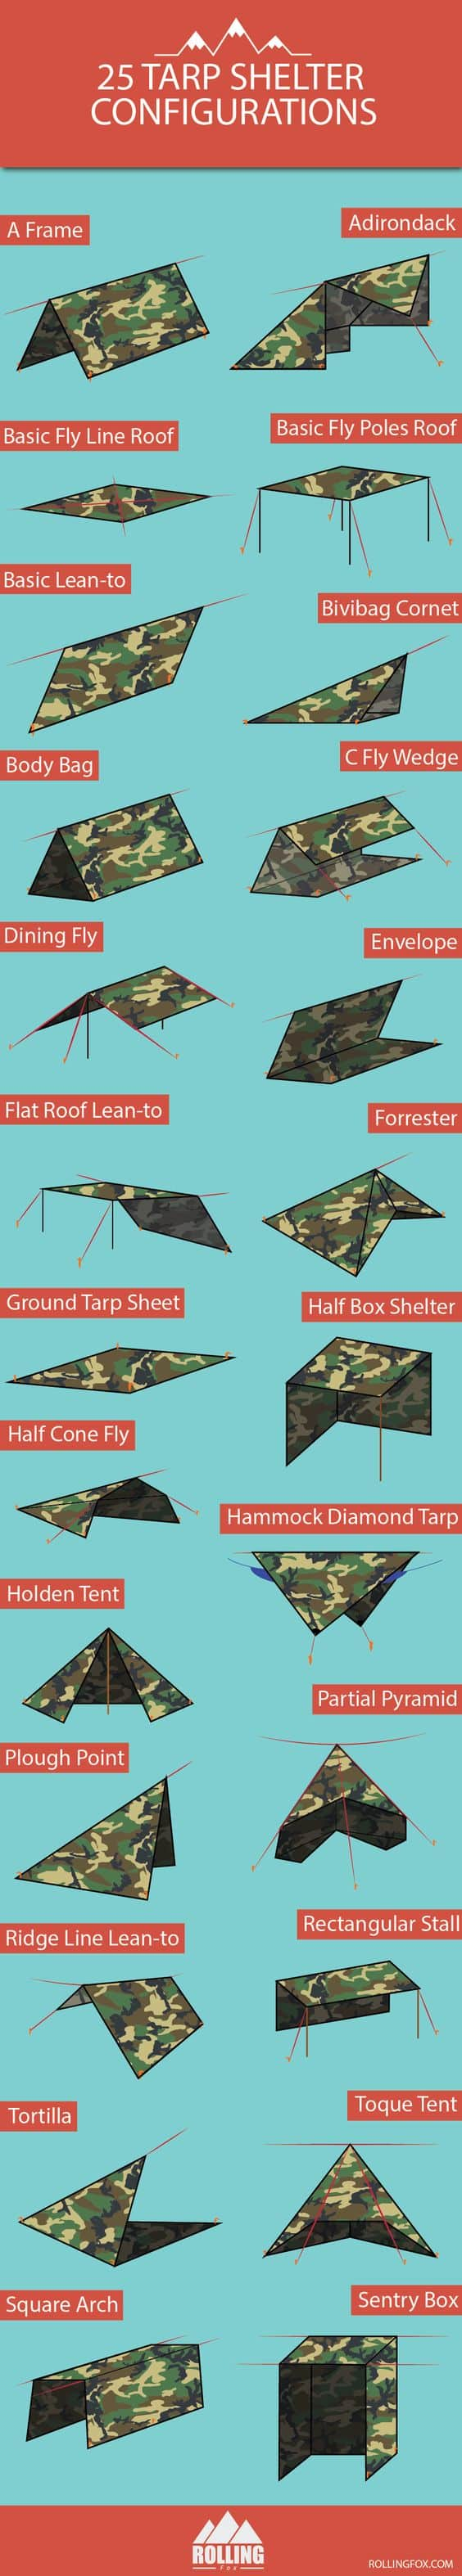 25 tarp shelter configurations infographic